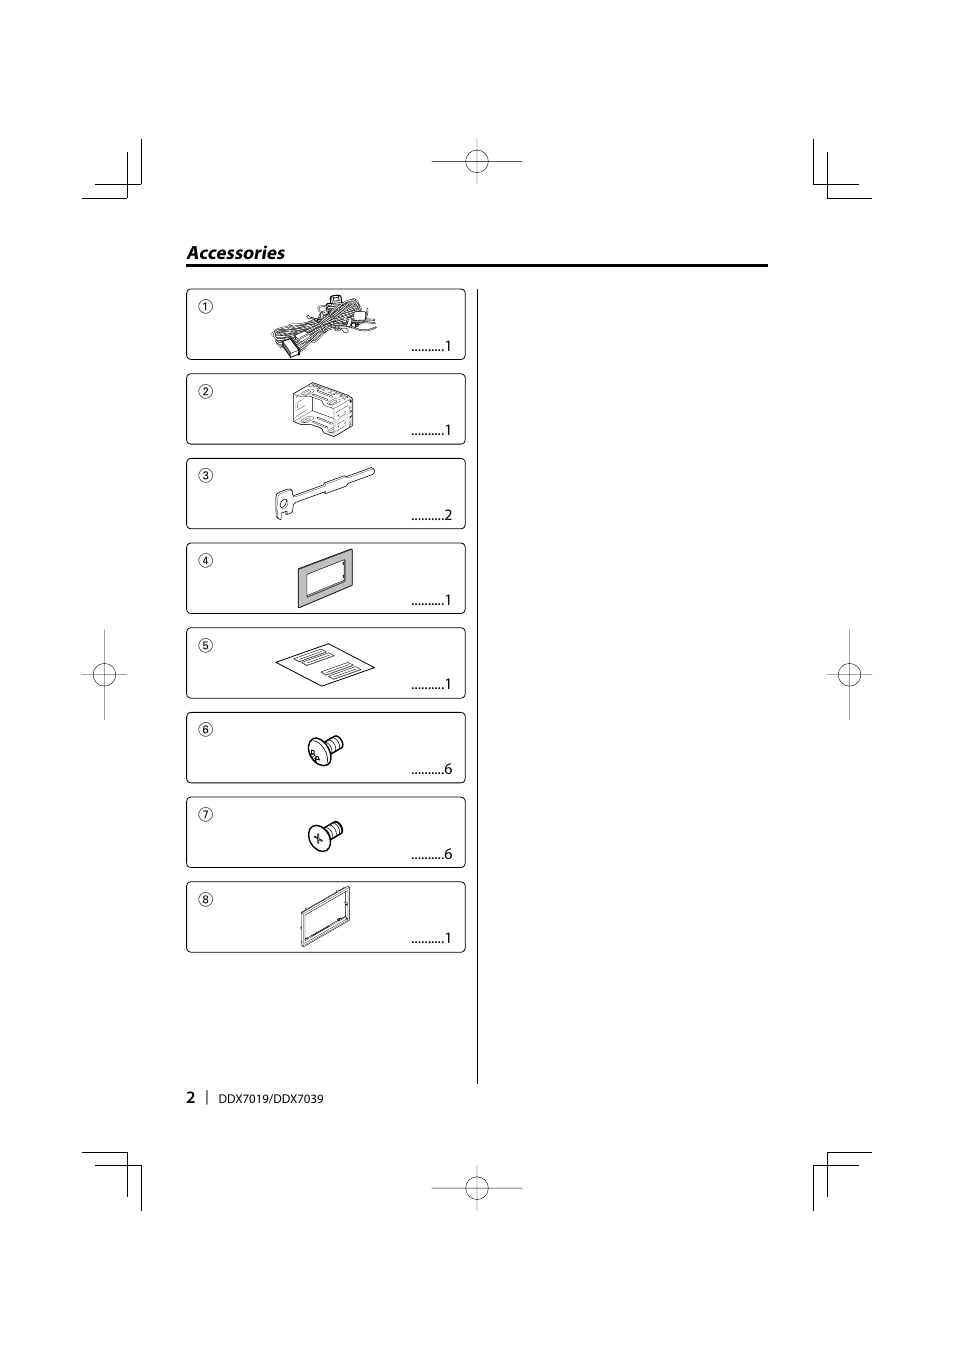 Kenwood Ddx7019 Wiring Diagram Pictures Kdc 2011s User Manual Page 2 10 Rh Manualsdir Com Owners Ddx7017